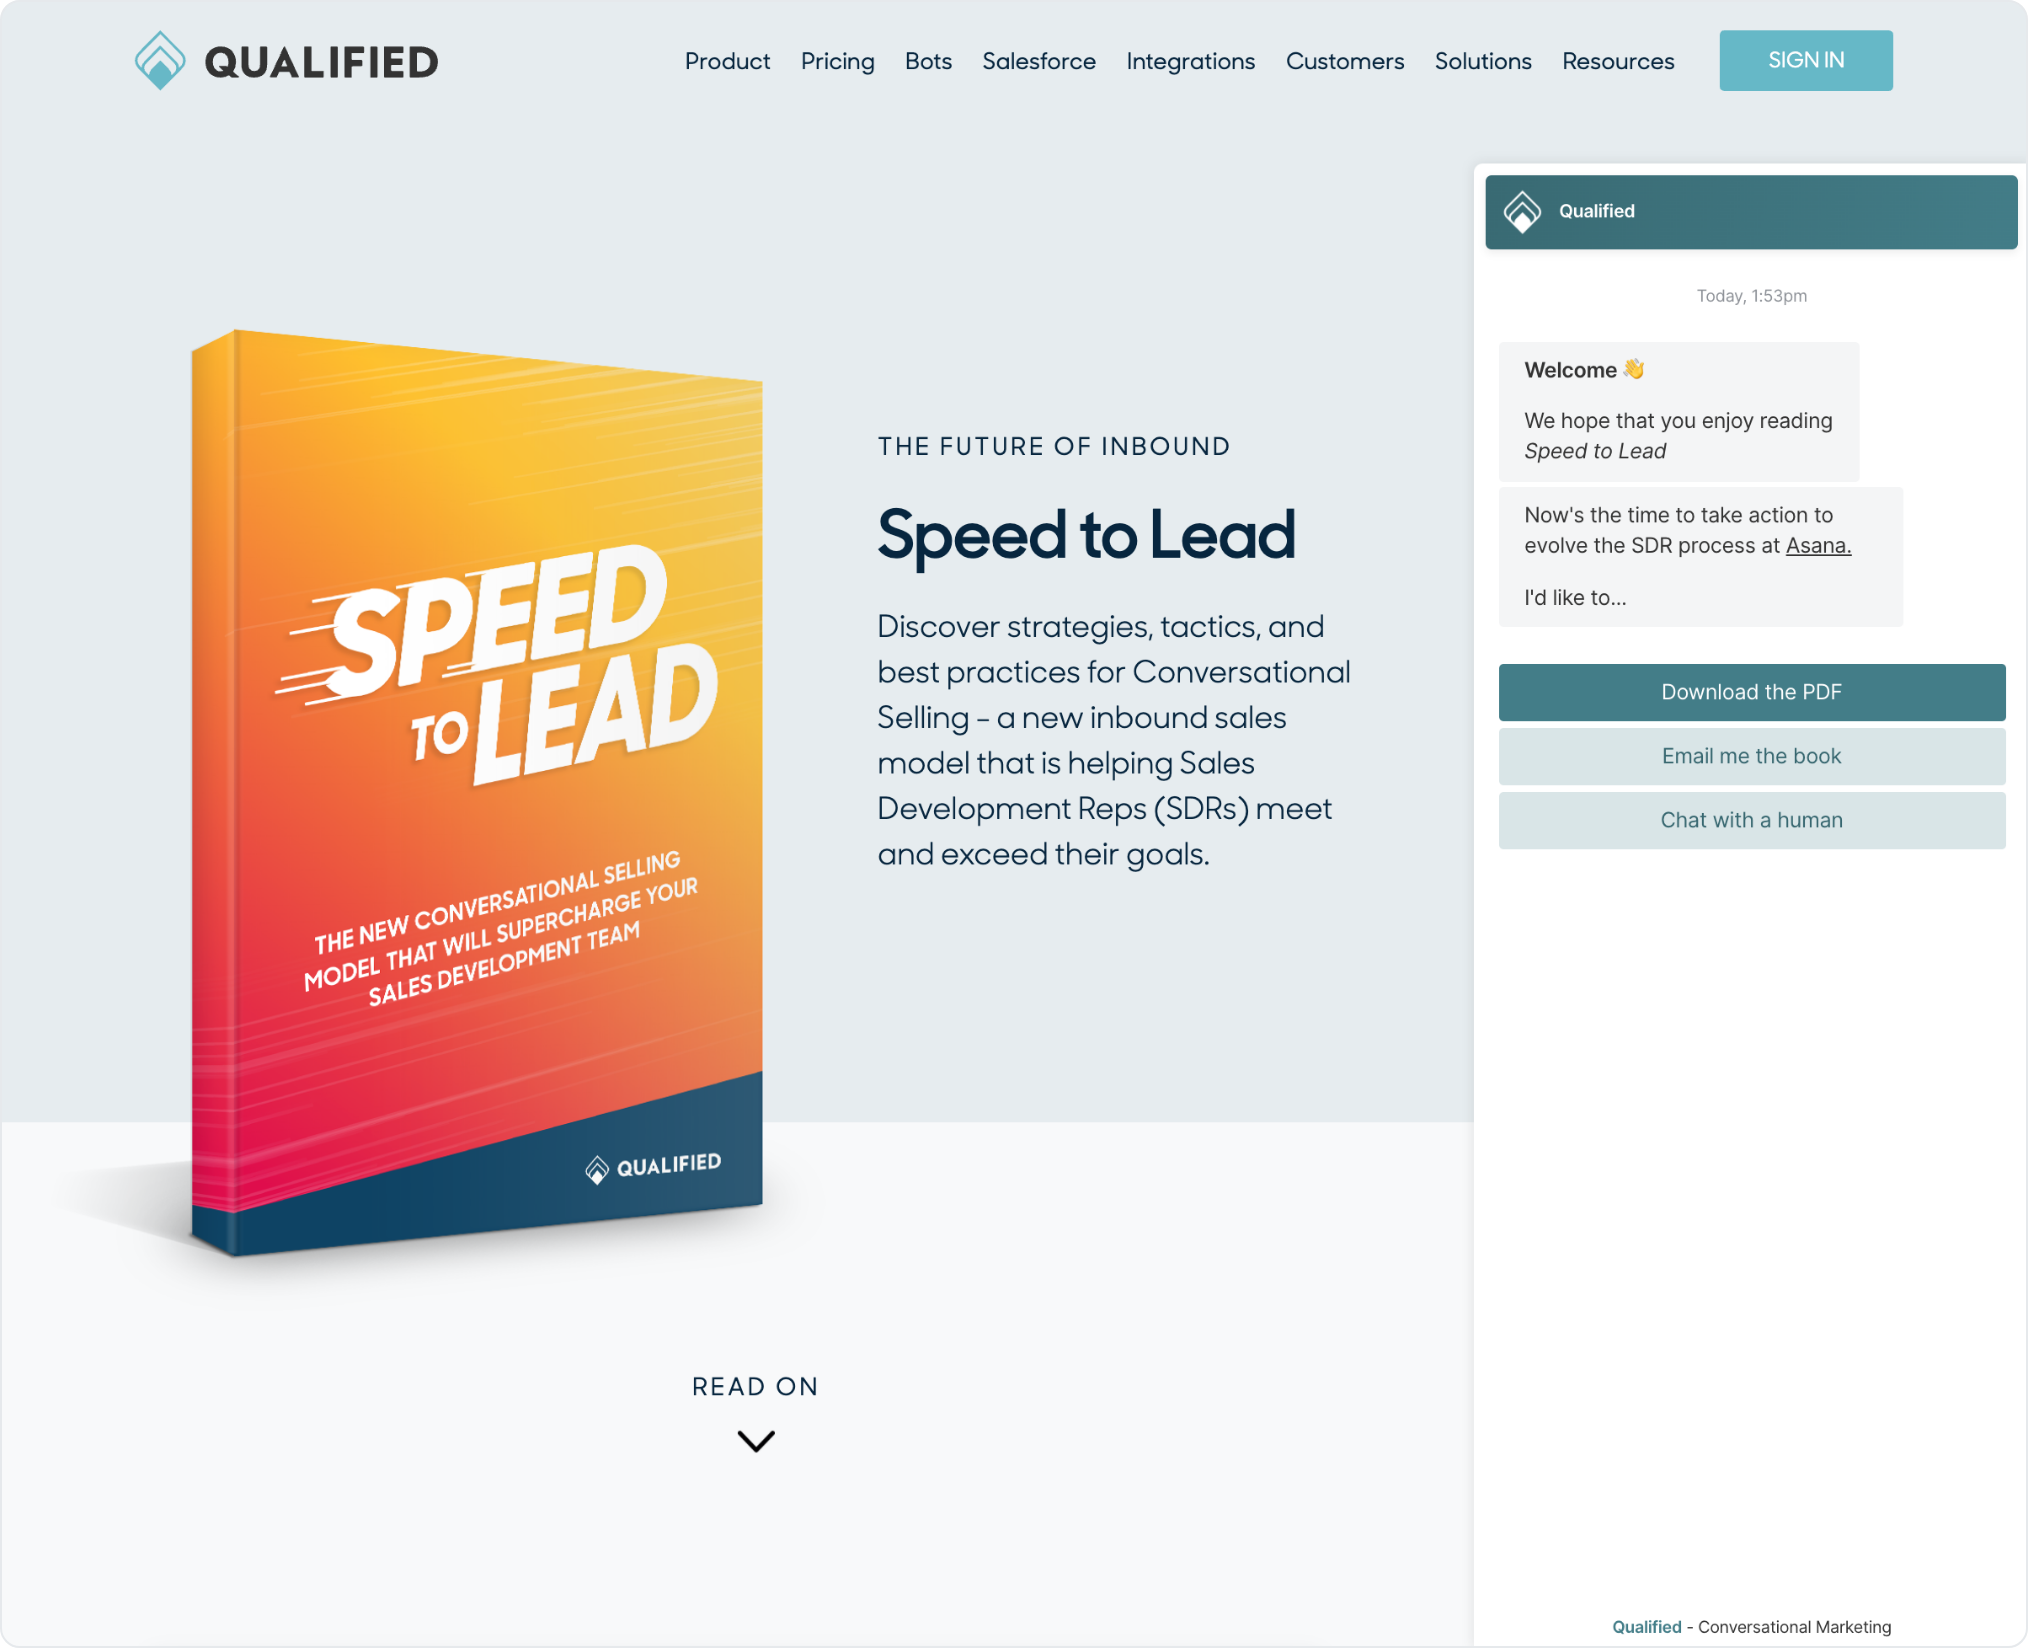 Qualified Summer '20 Release: Make your content interactive with Conversational Content Marketing